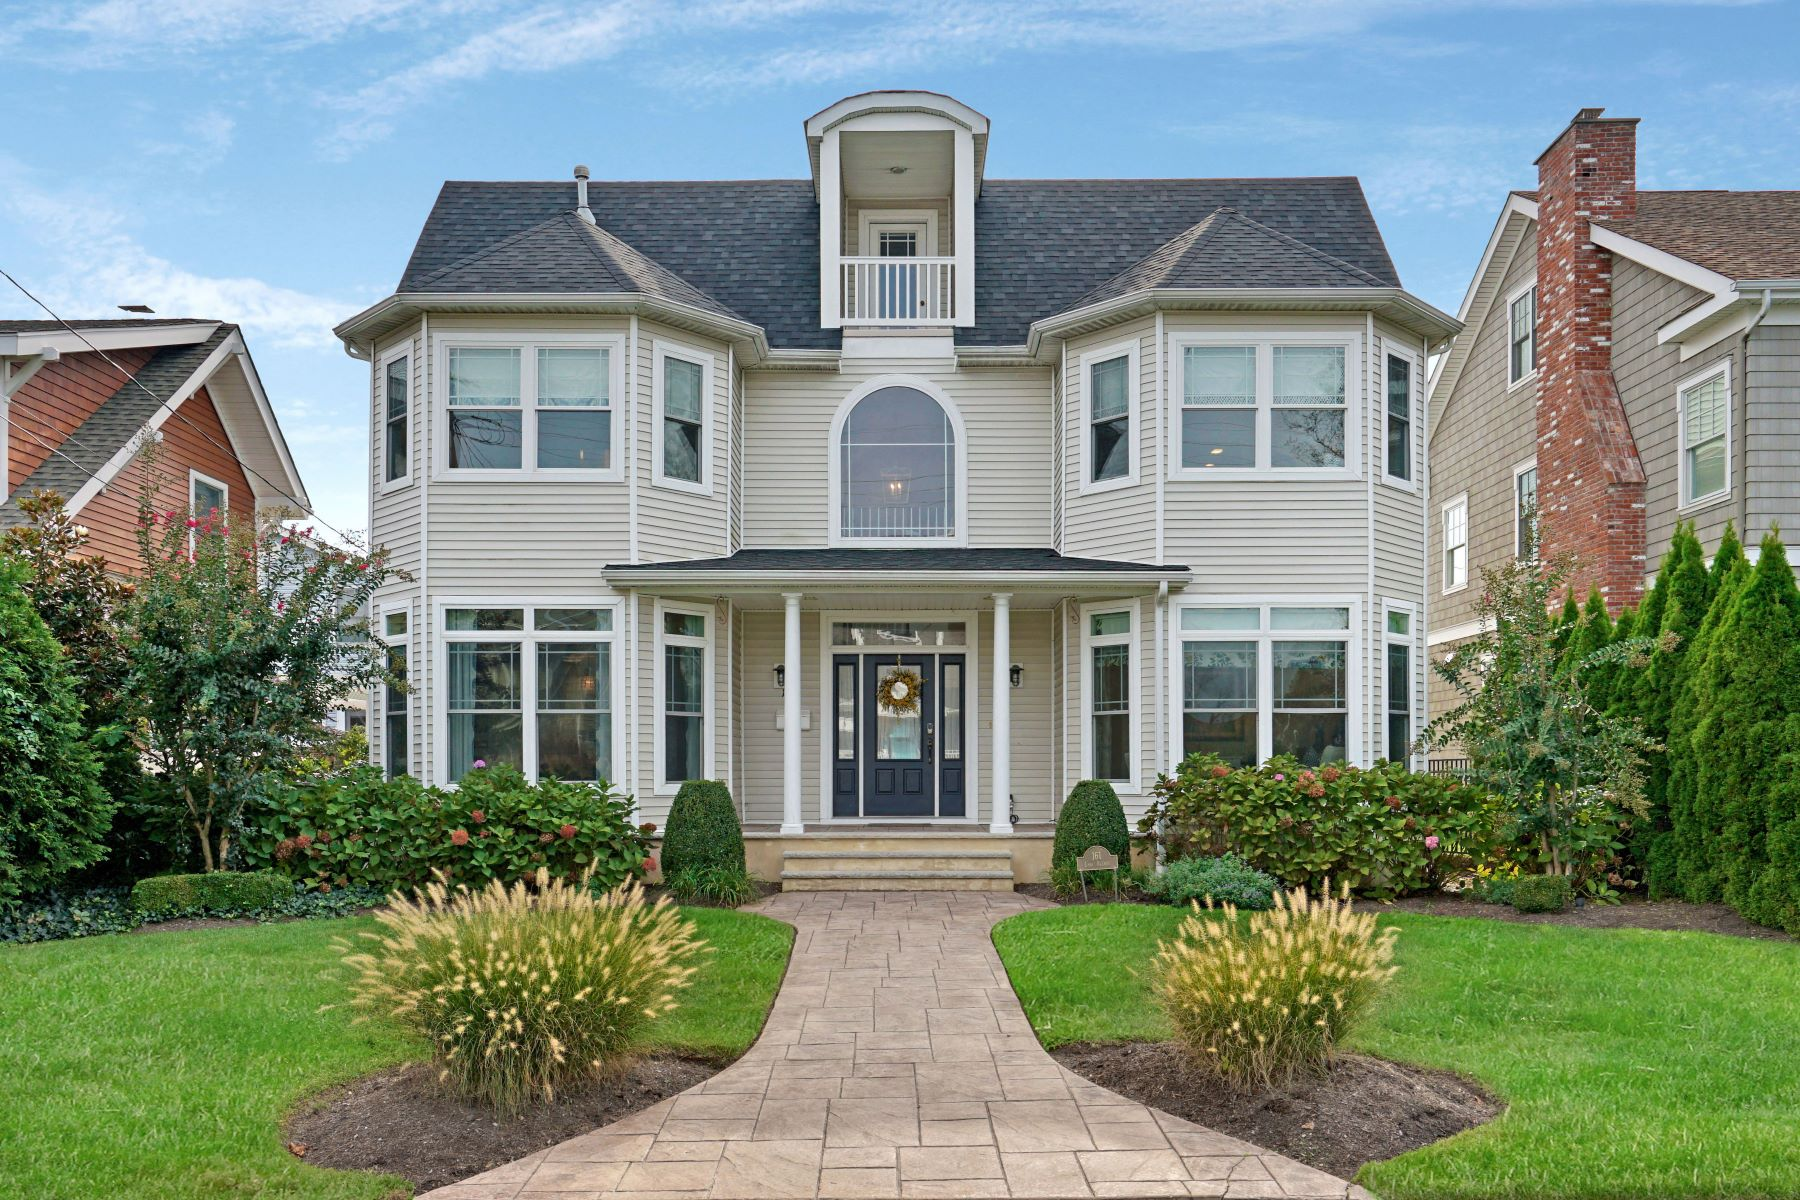 Single Family Homes for Sale at Coming Soon 161 Lake Avenue, Manasquan, New Jersey 08736 United States